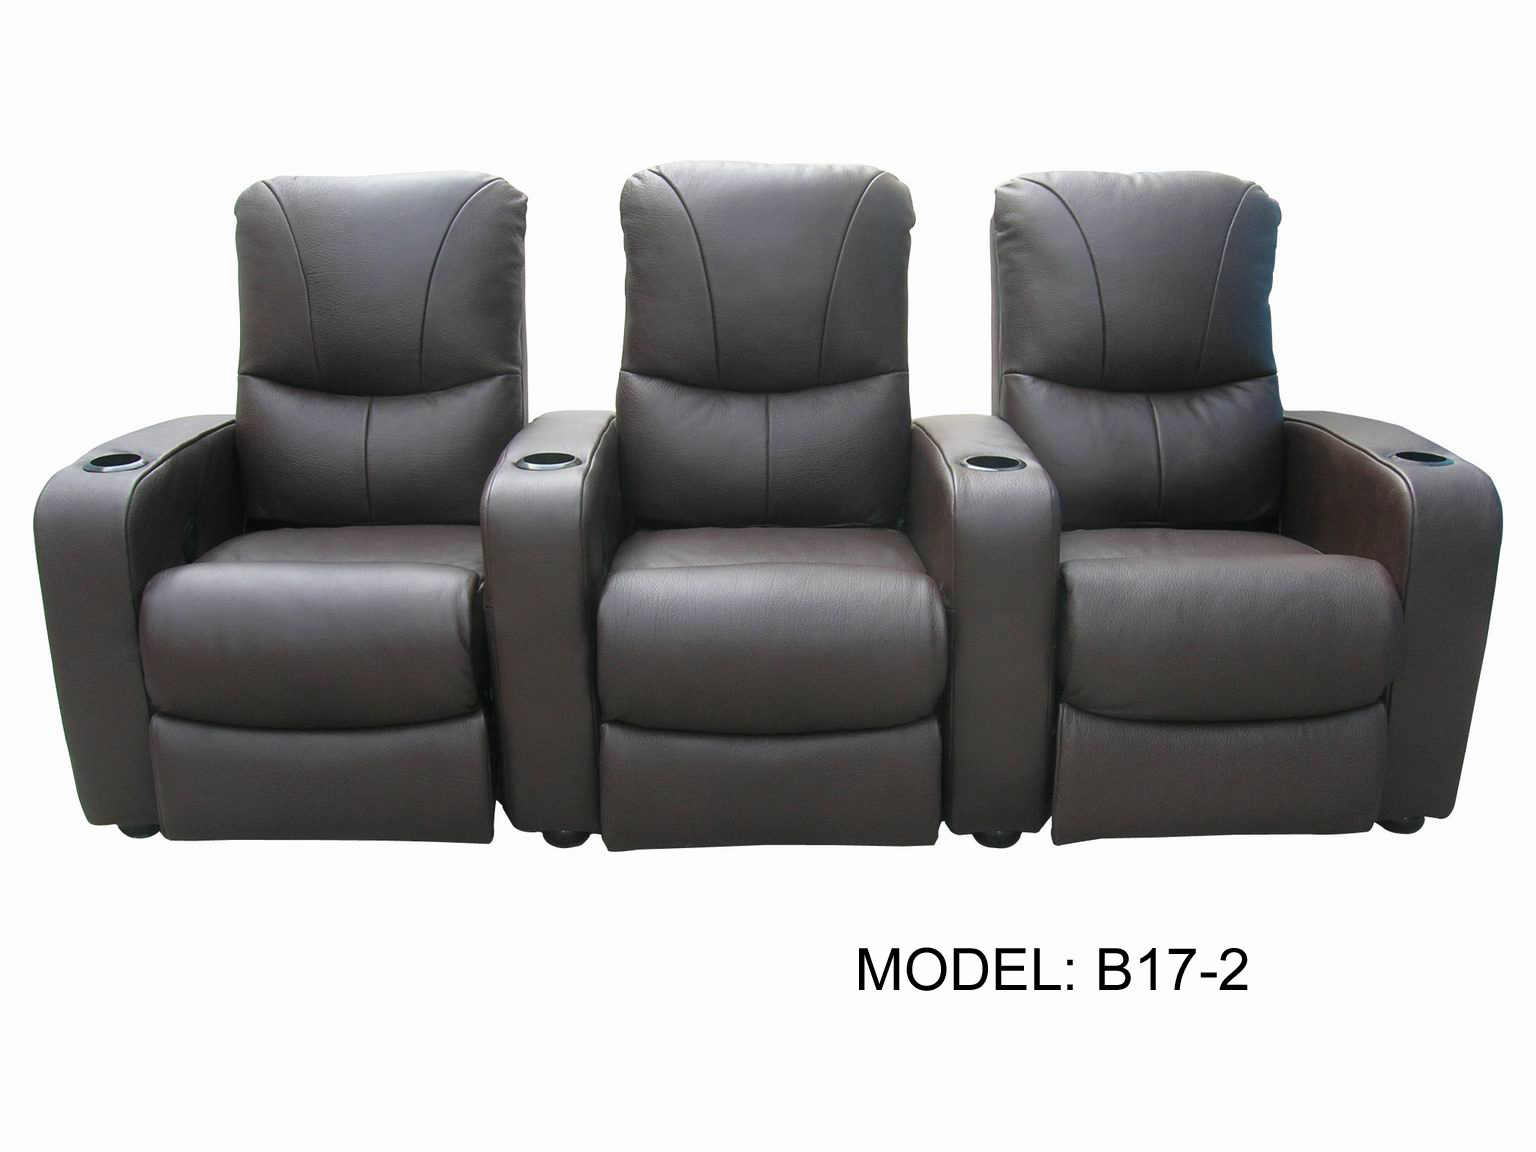 Theater Couches China Home Theater Seating B17 2 China Home Theater